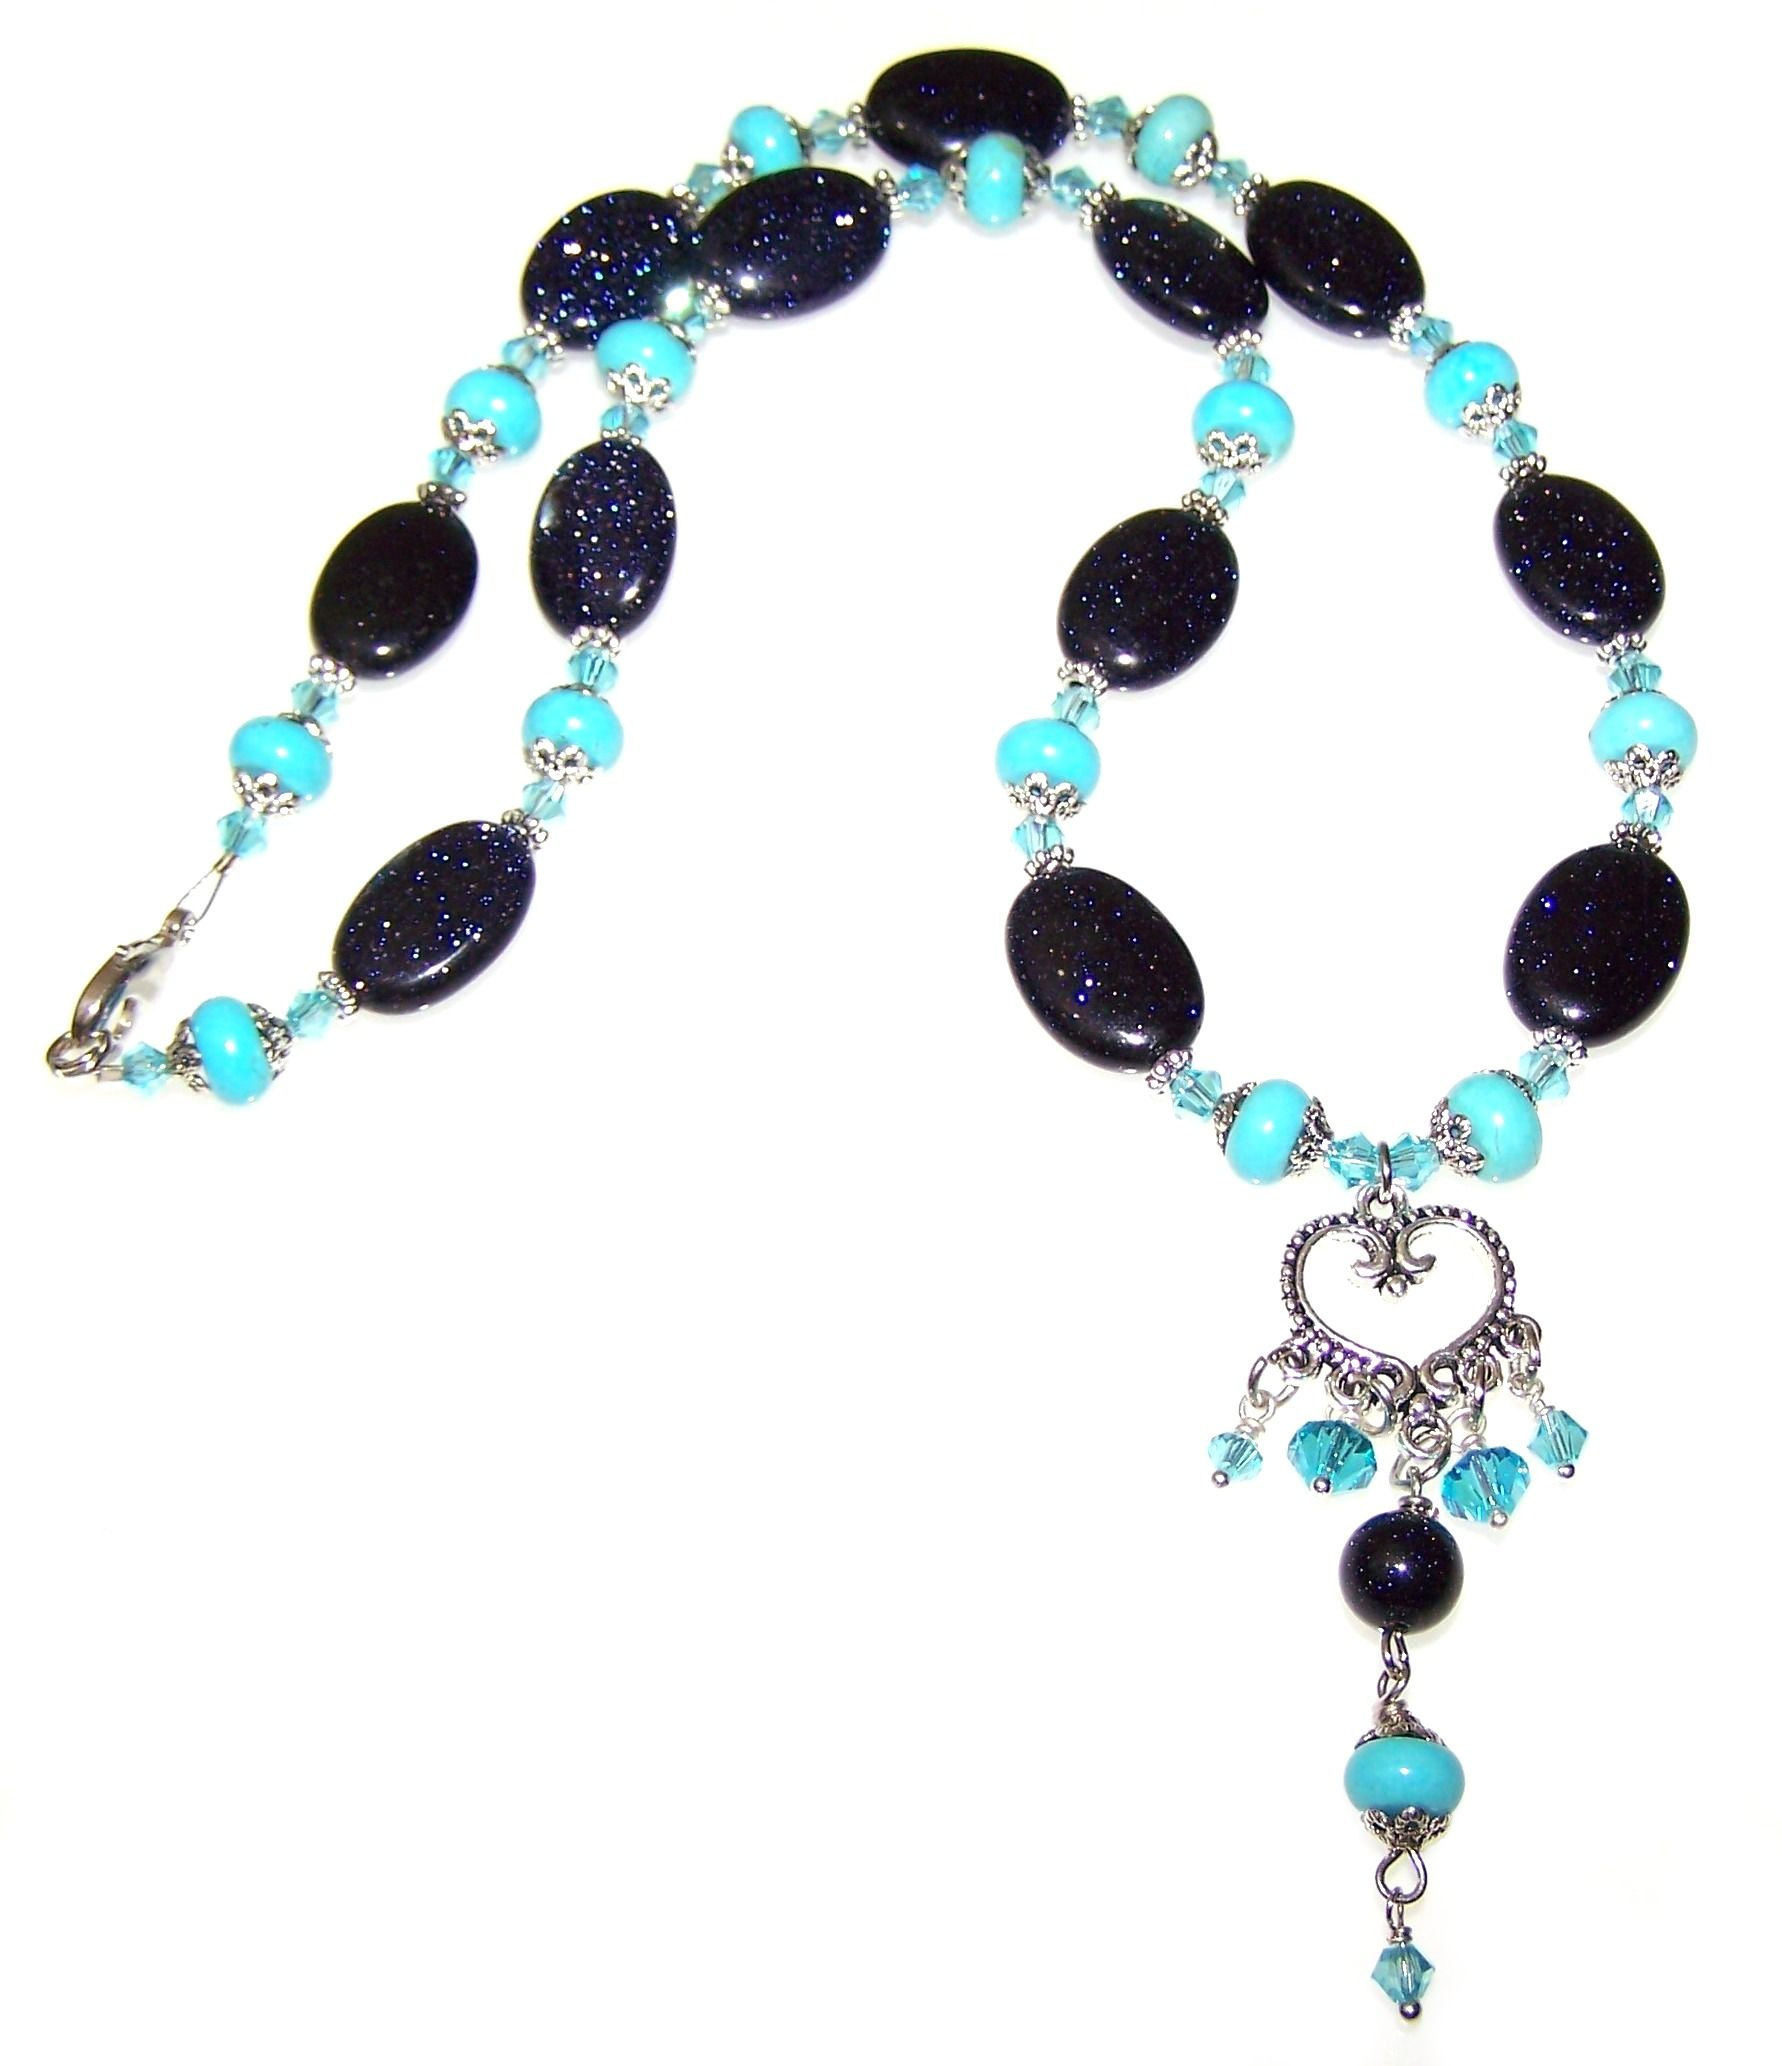 Moons Embrace Necklace Free Beaded Jewelry Making Pattern